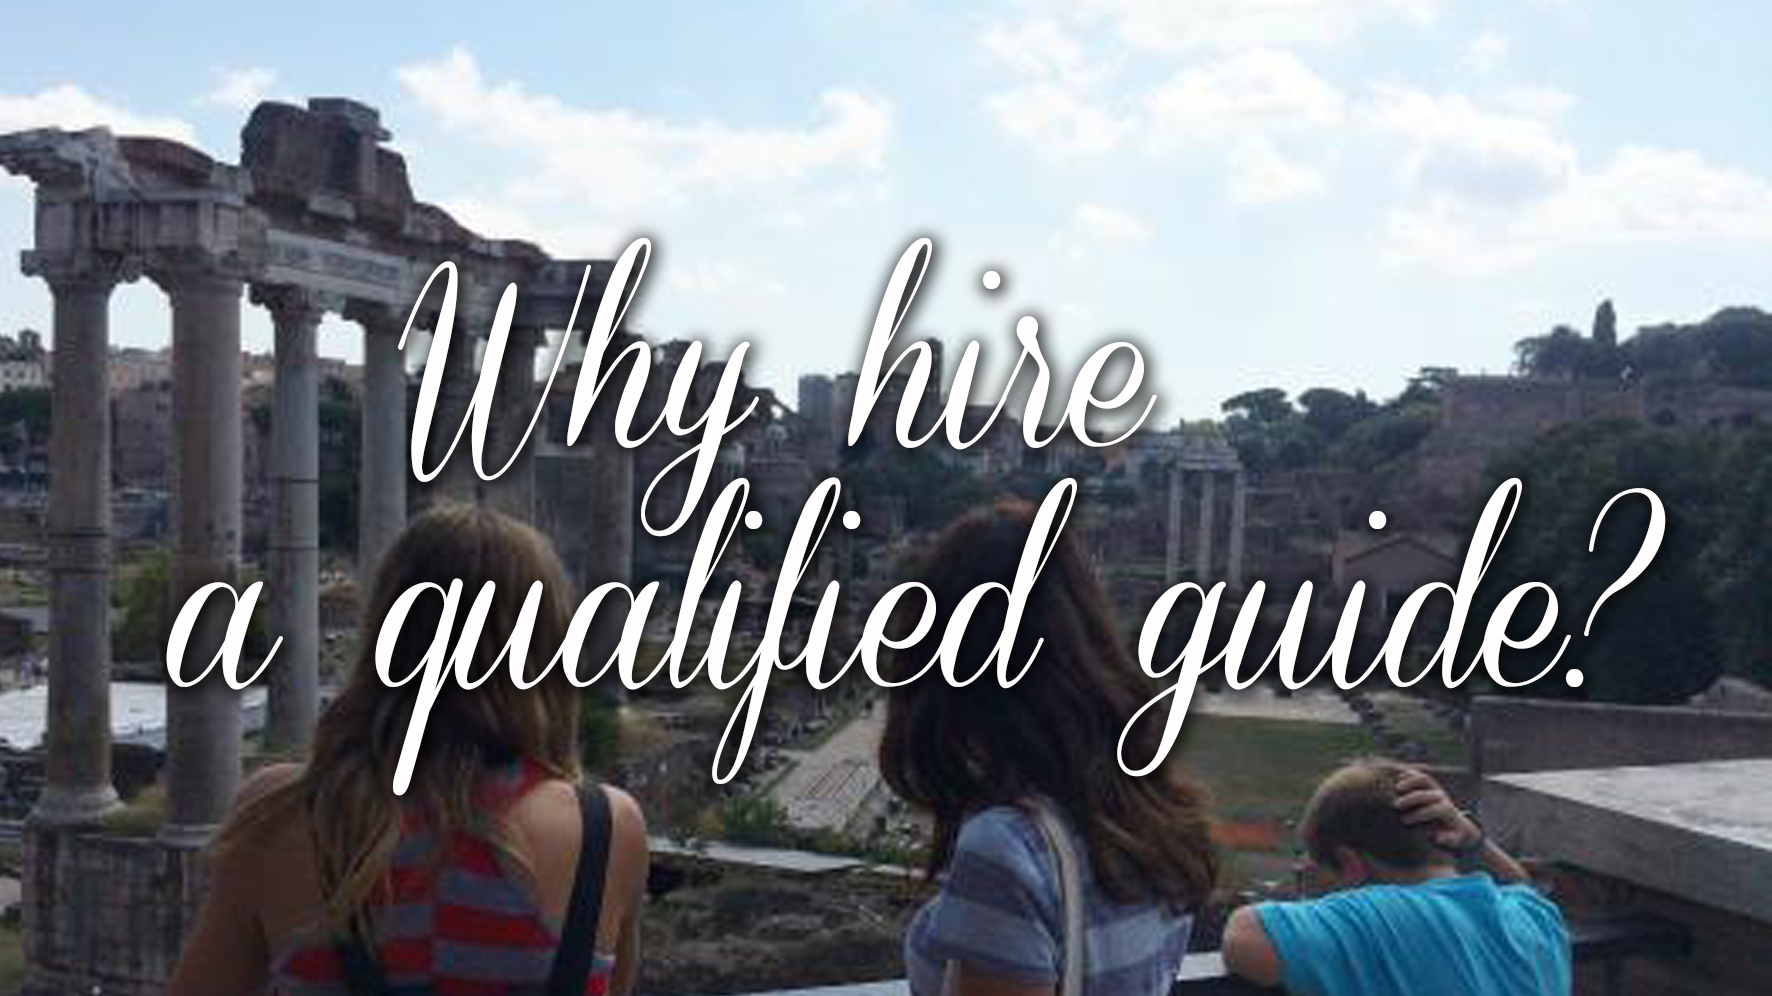 Why hire a qualified guide?